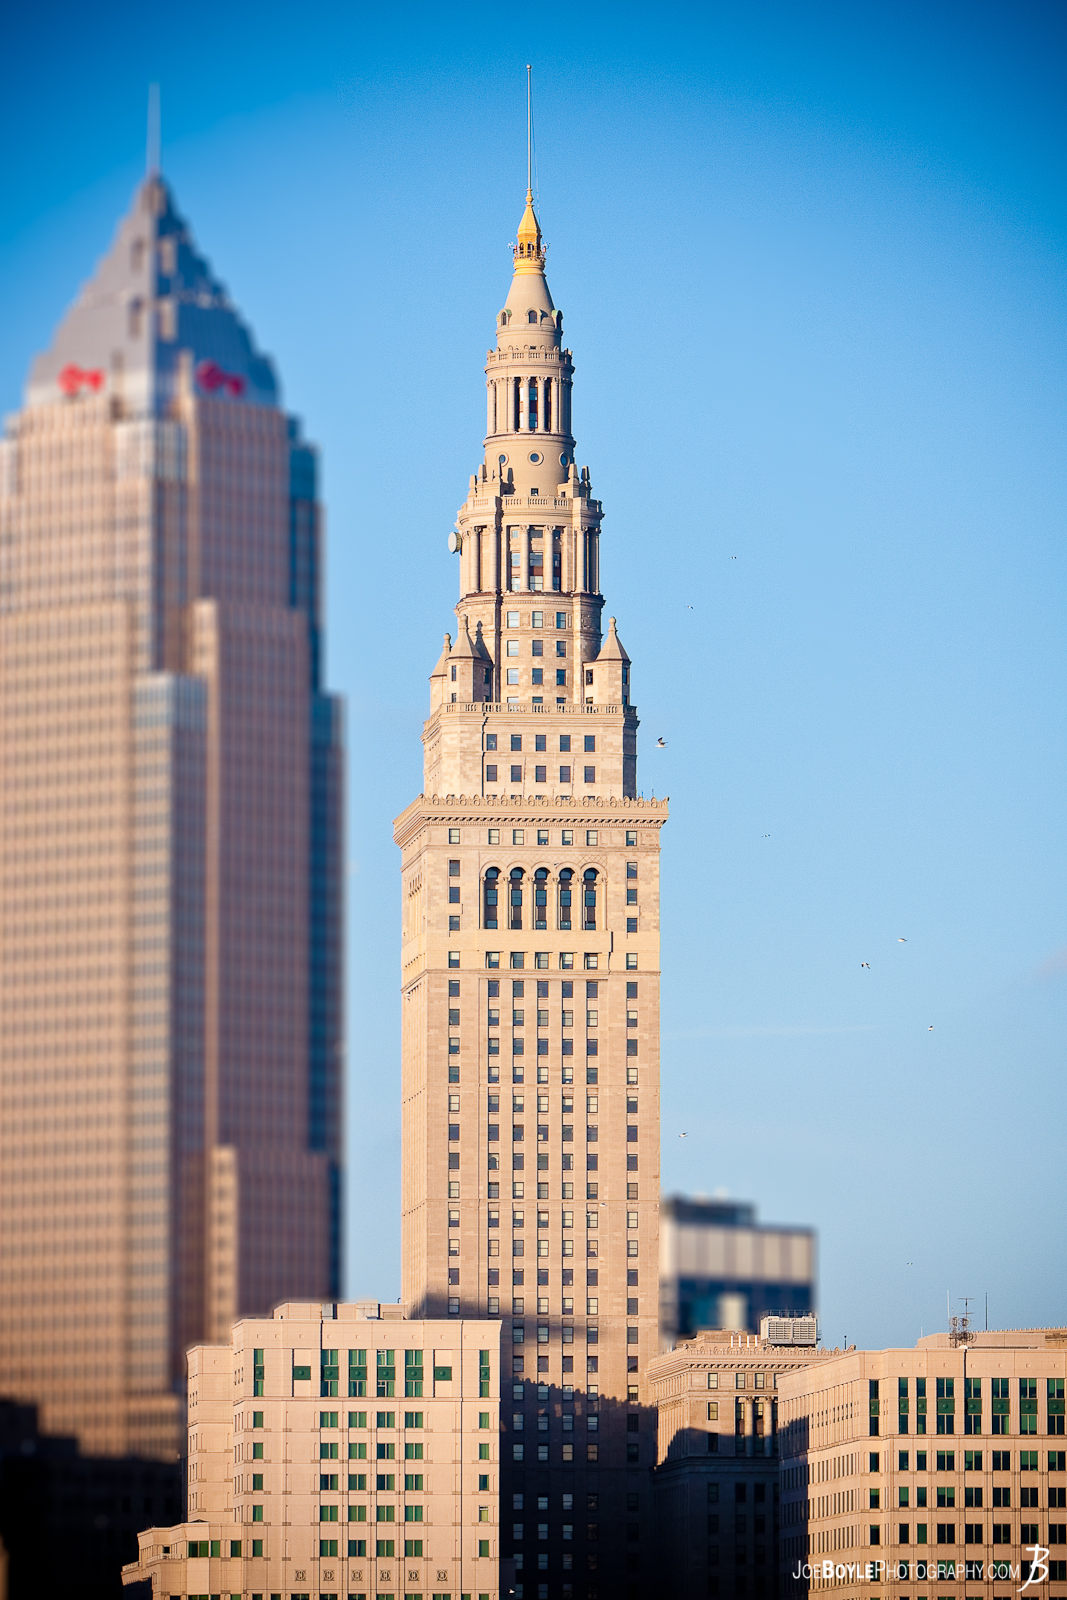 I took this image from the Hope Memorial Bridge. Featured here is the Terminal Tower and the blurred out Key Tower.